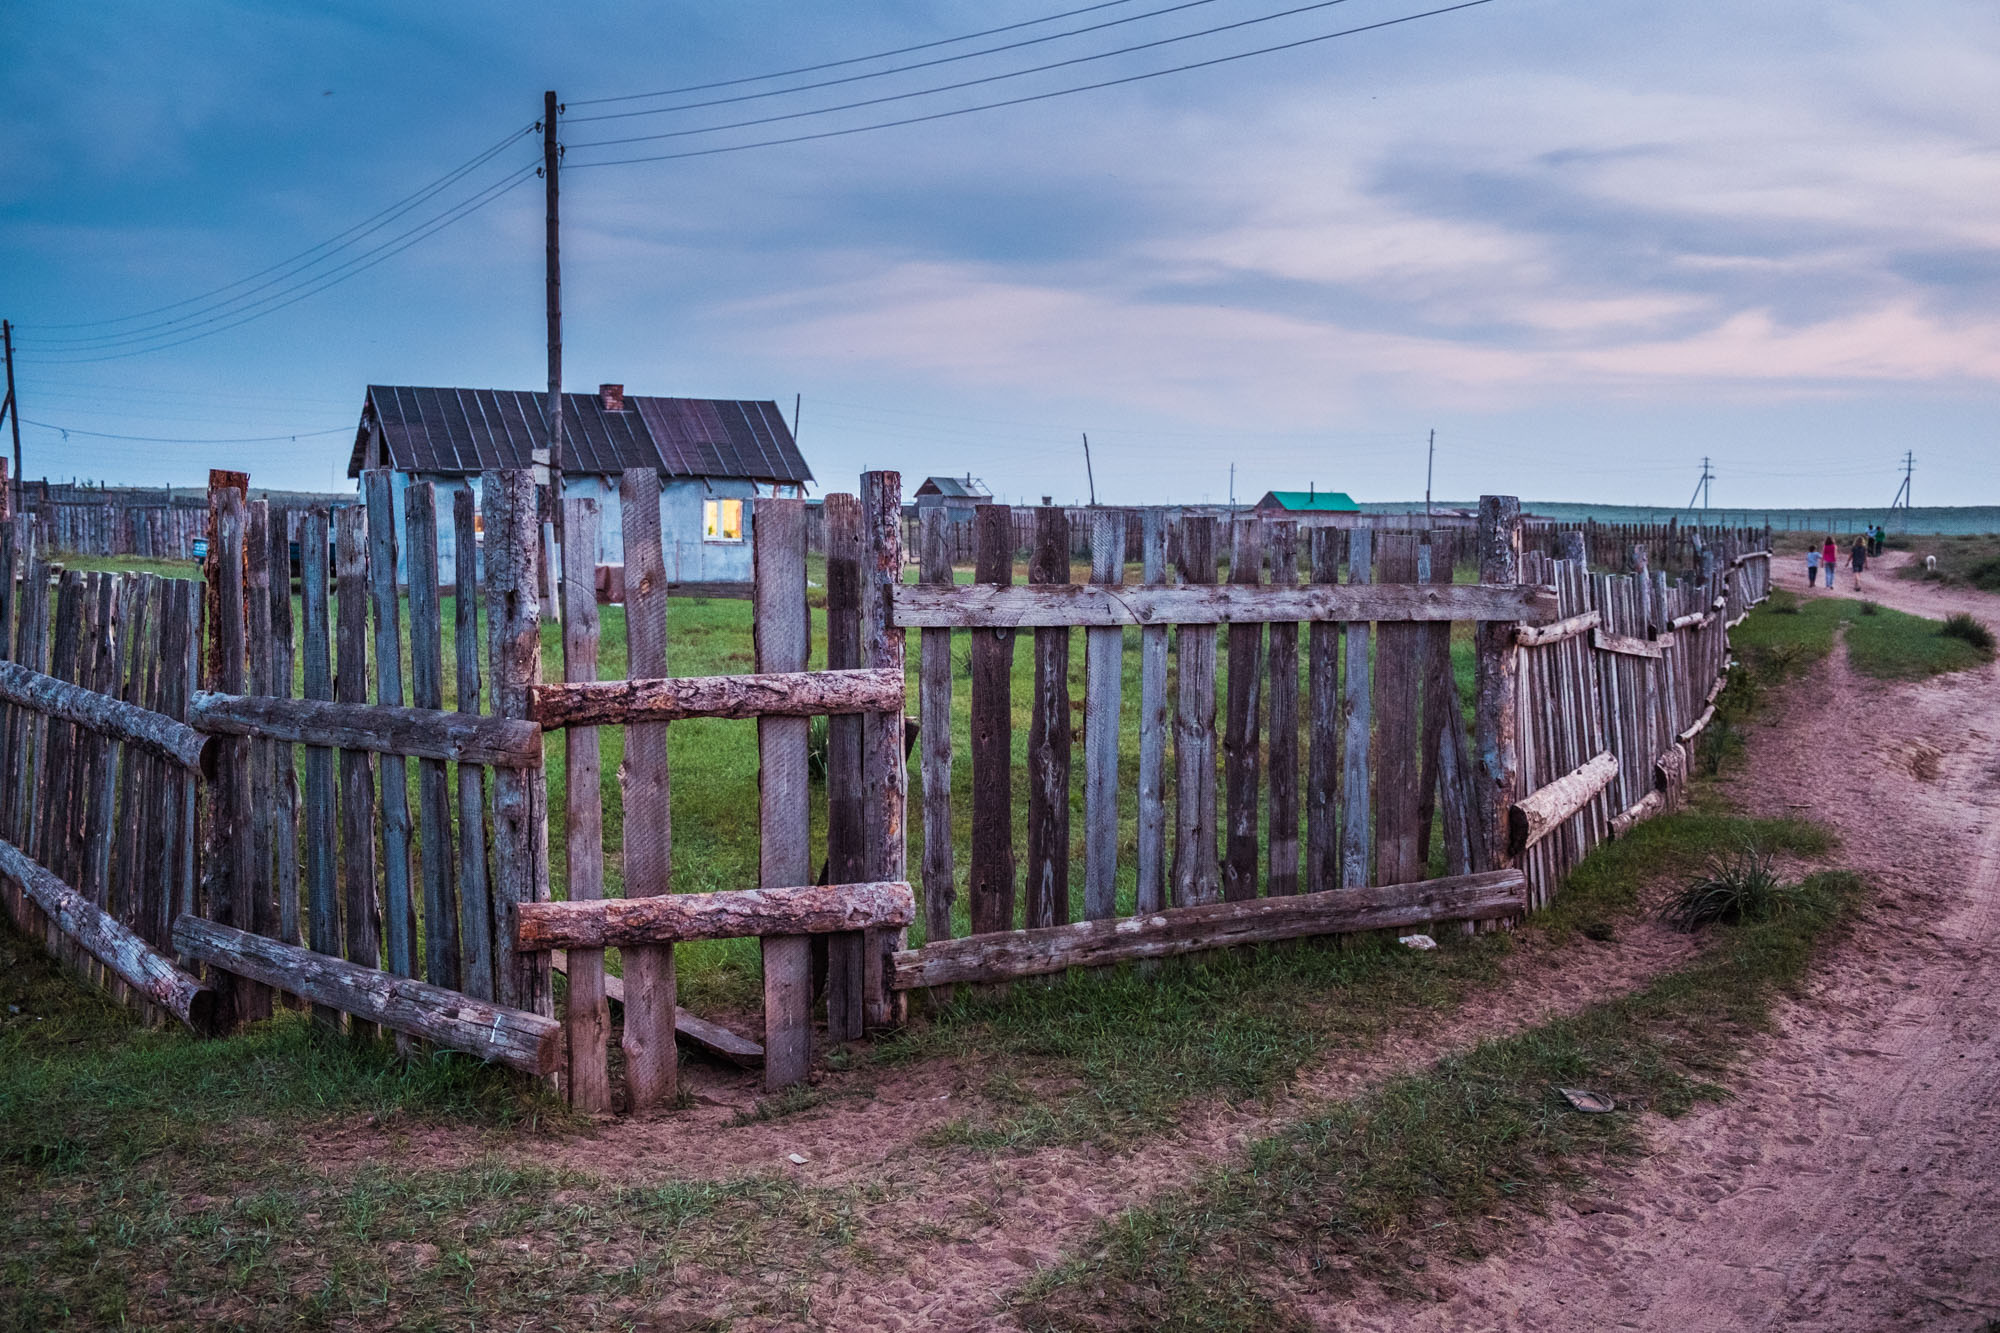 Fence in the ger district - Sukhbaatar, Mongolia